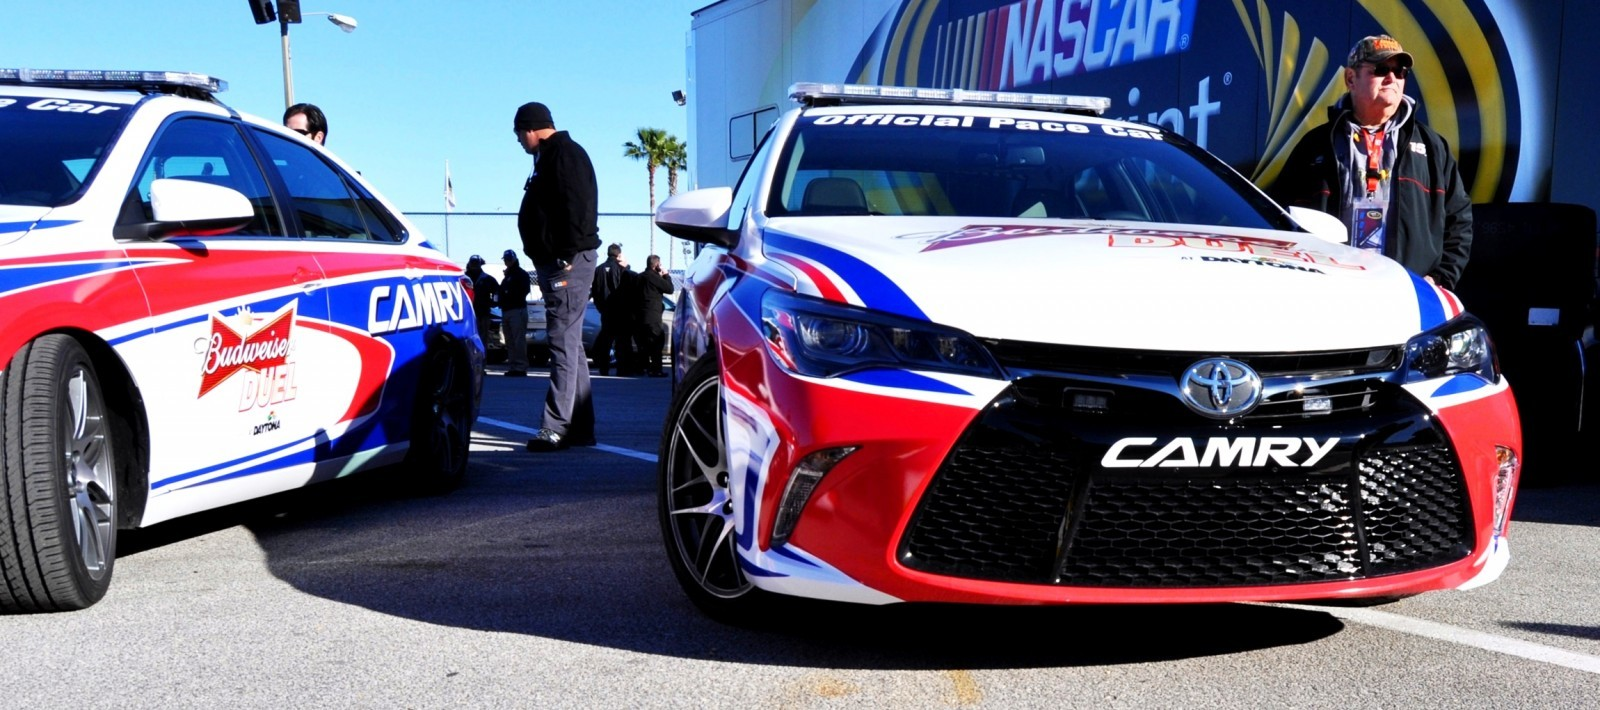 2015 Toyota Camry - DAYTONA 500 Official Pace Car 29